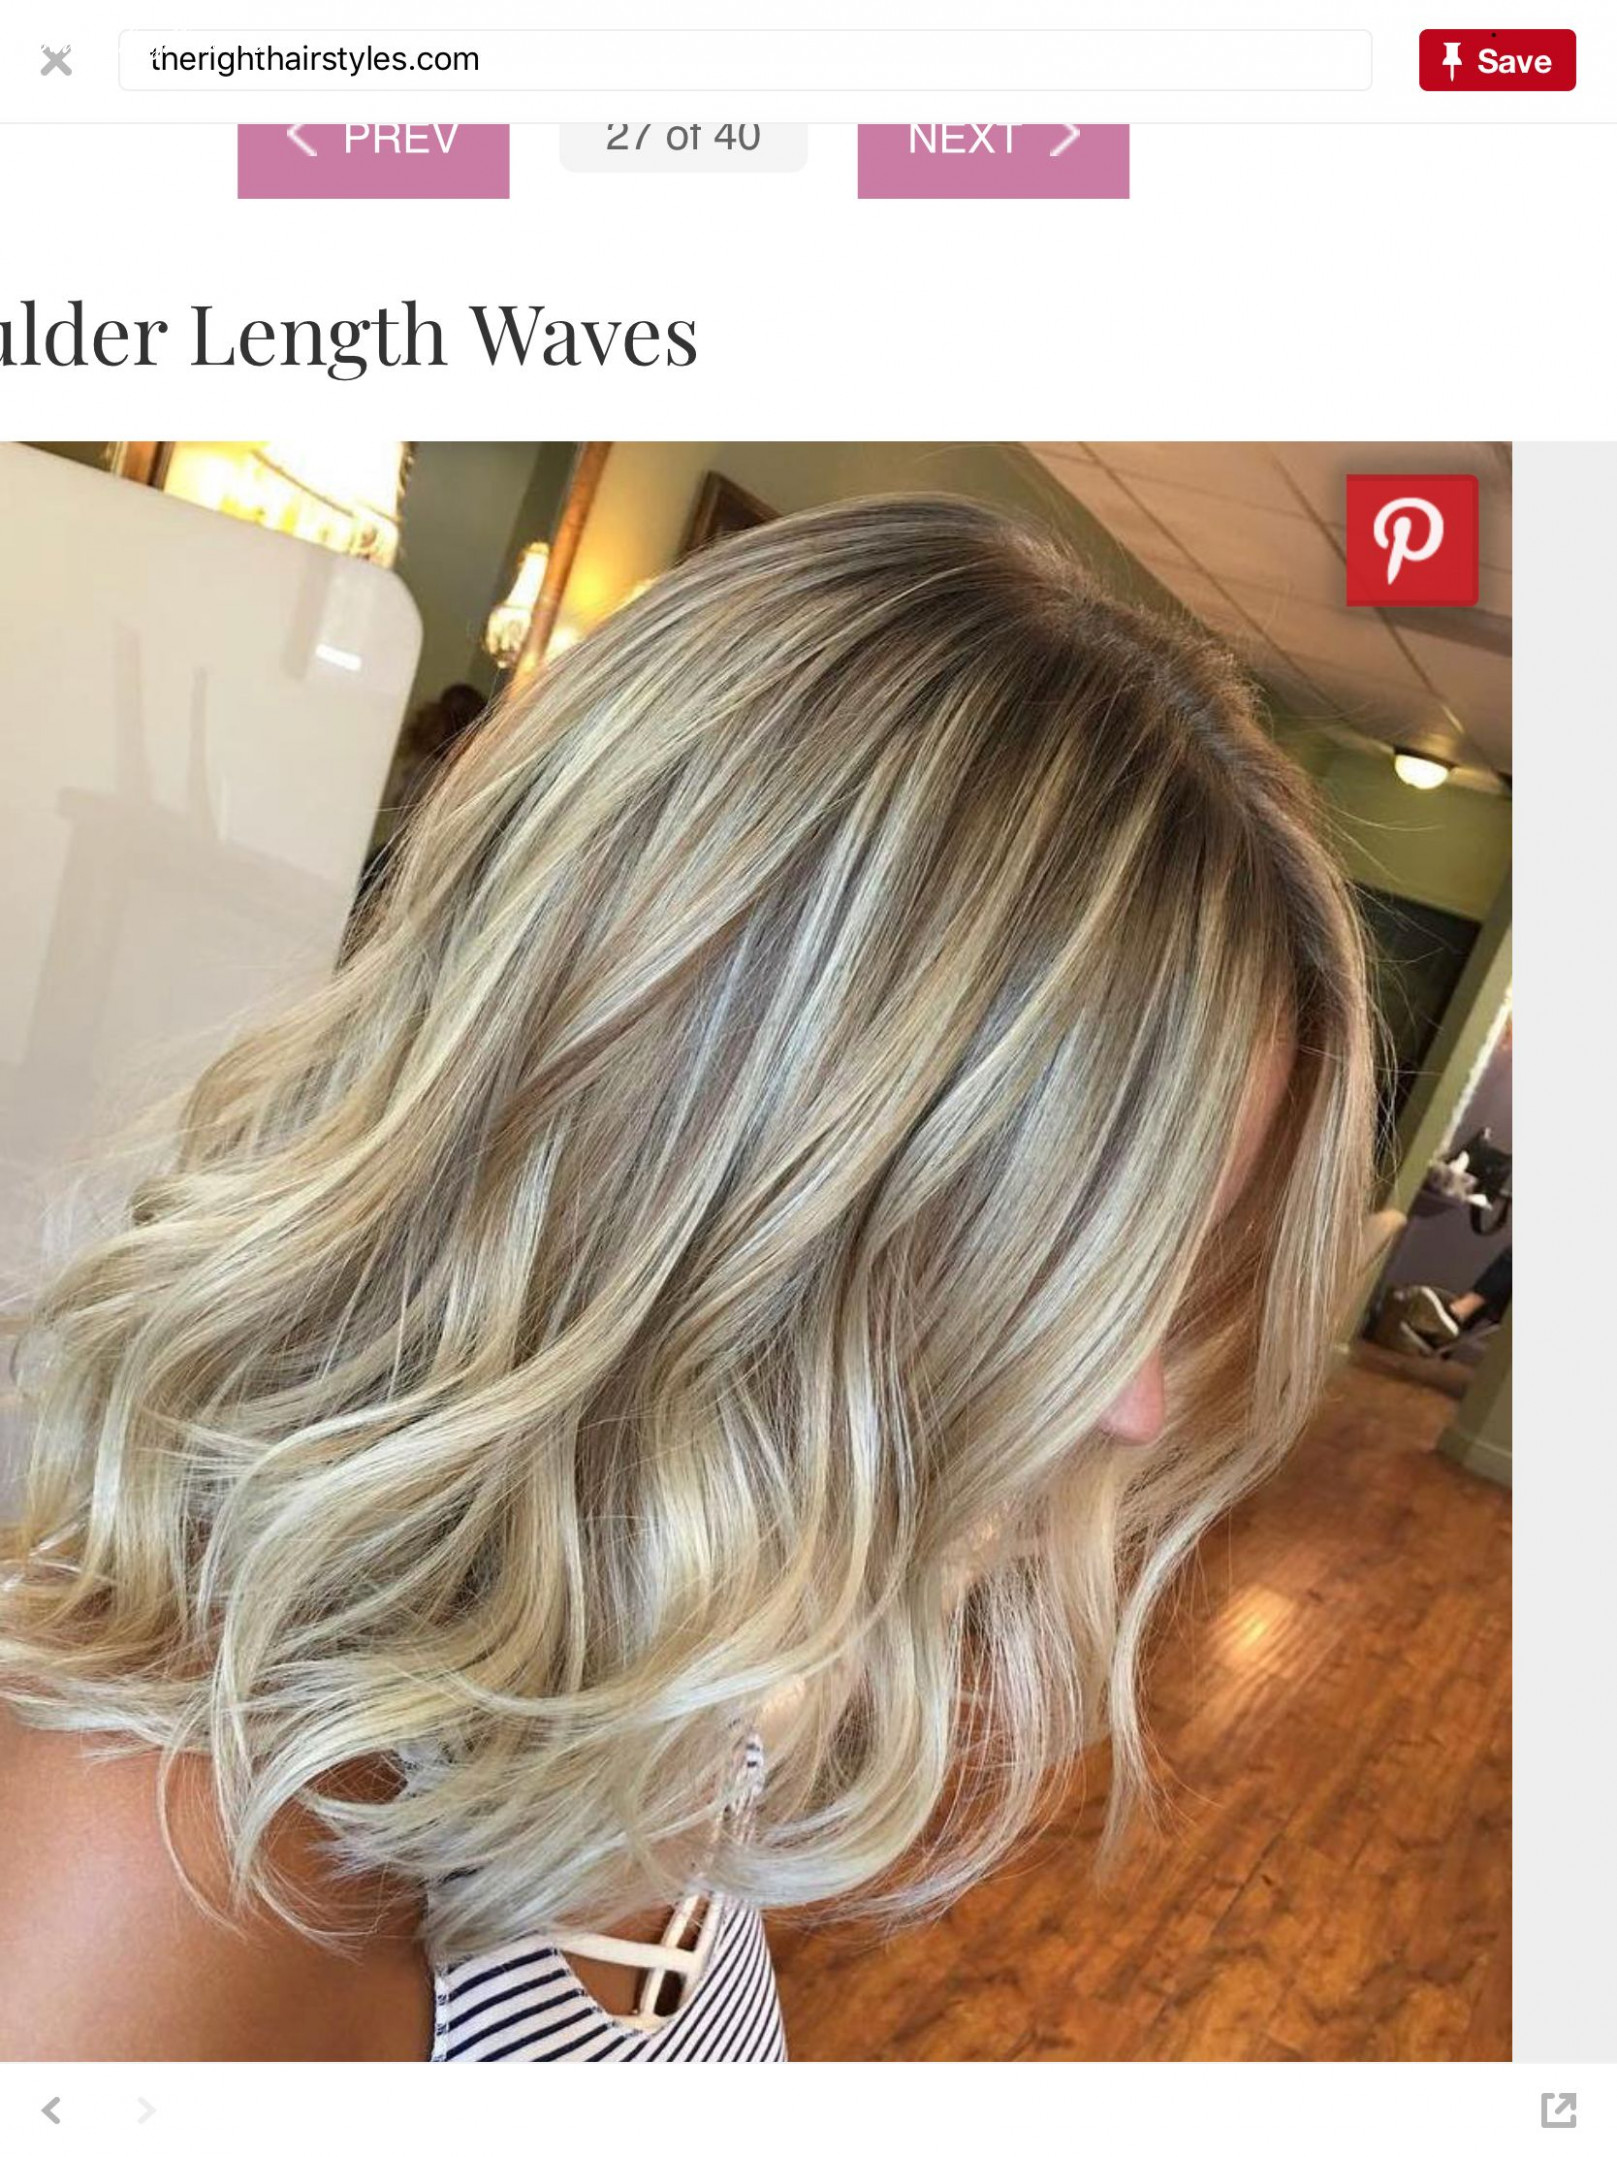 Shoulder length blonde beach waves | frisuren, frisuren schneiden